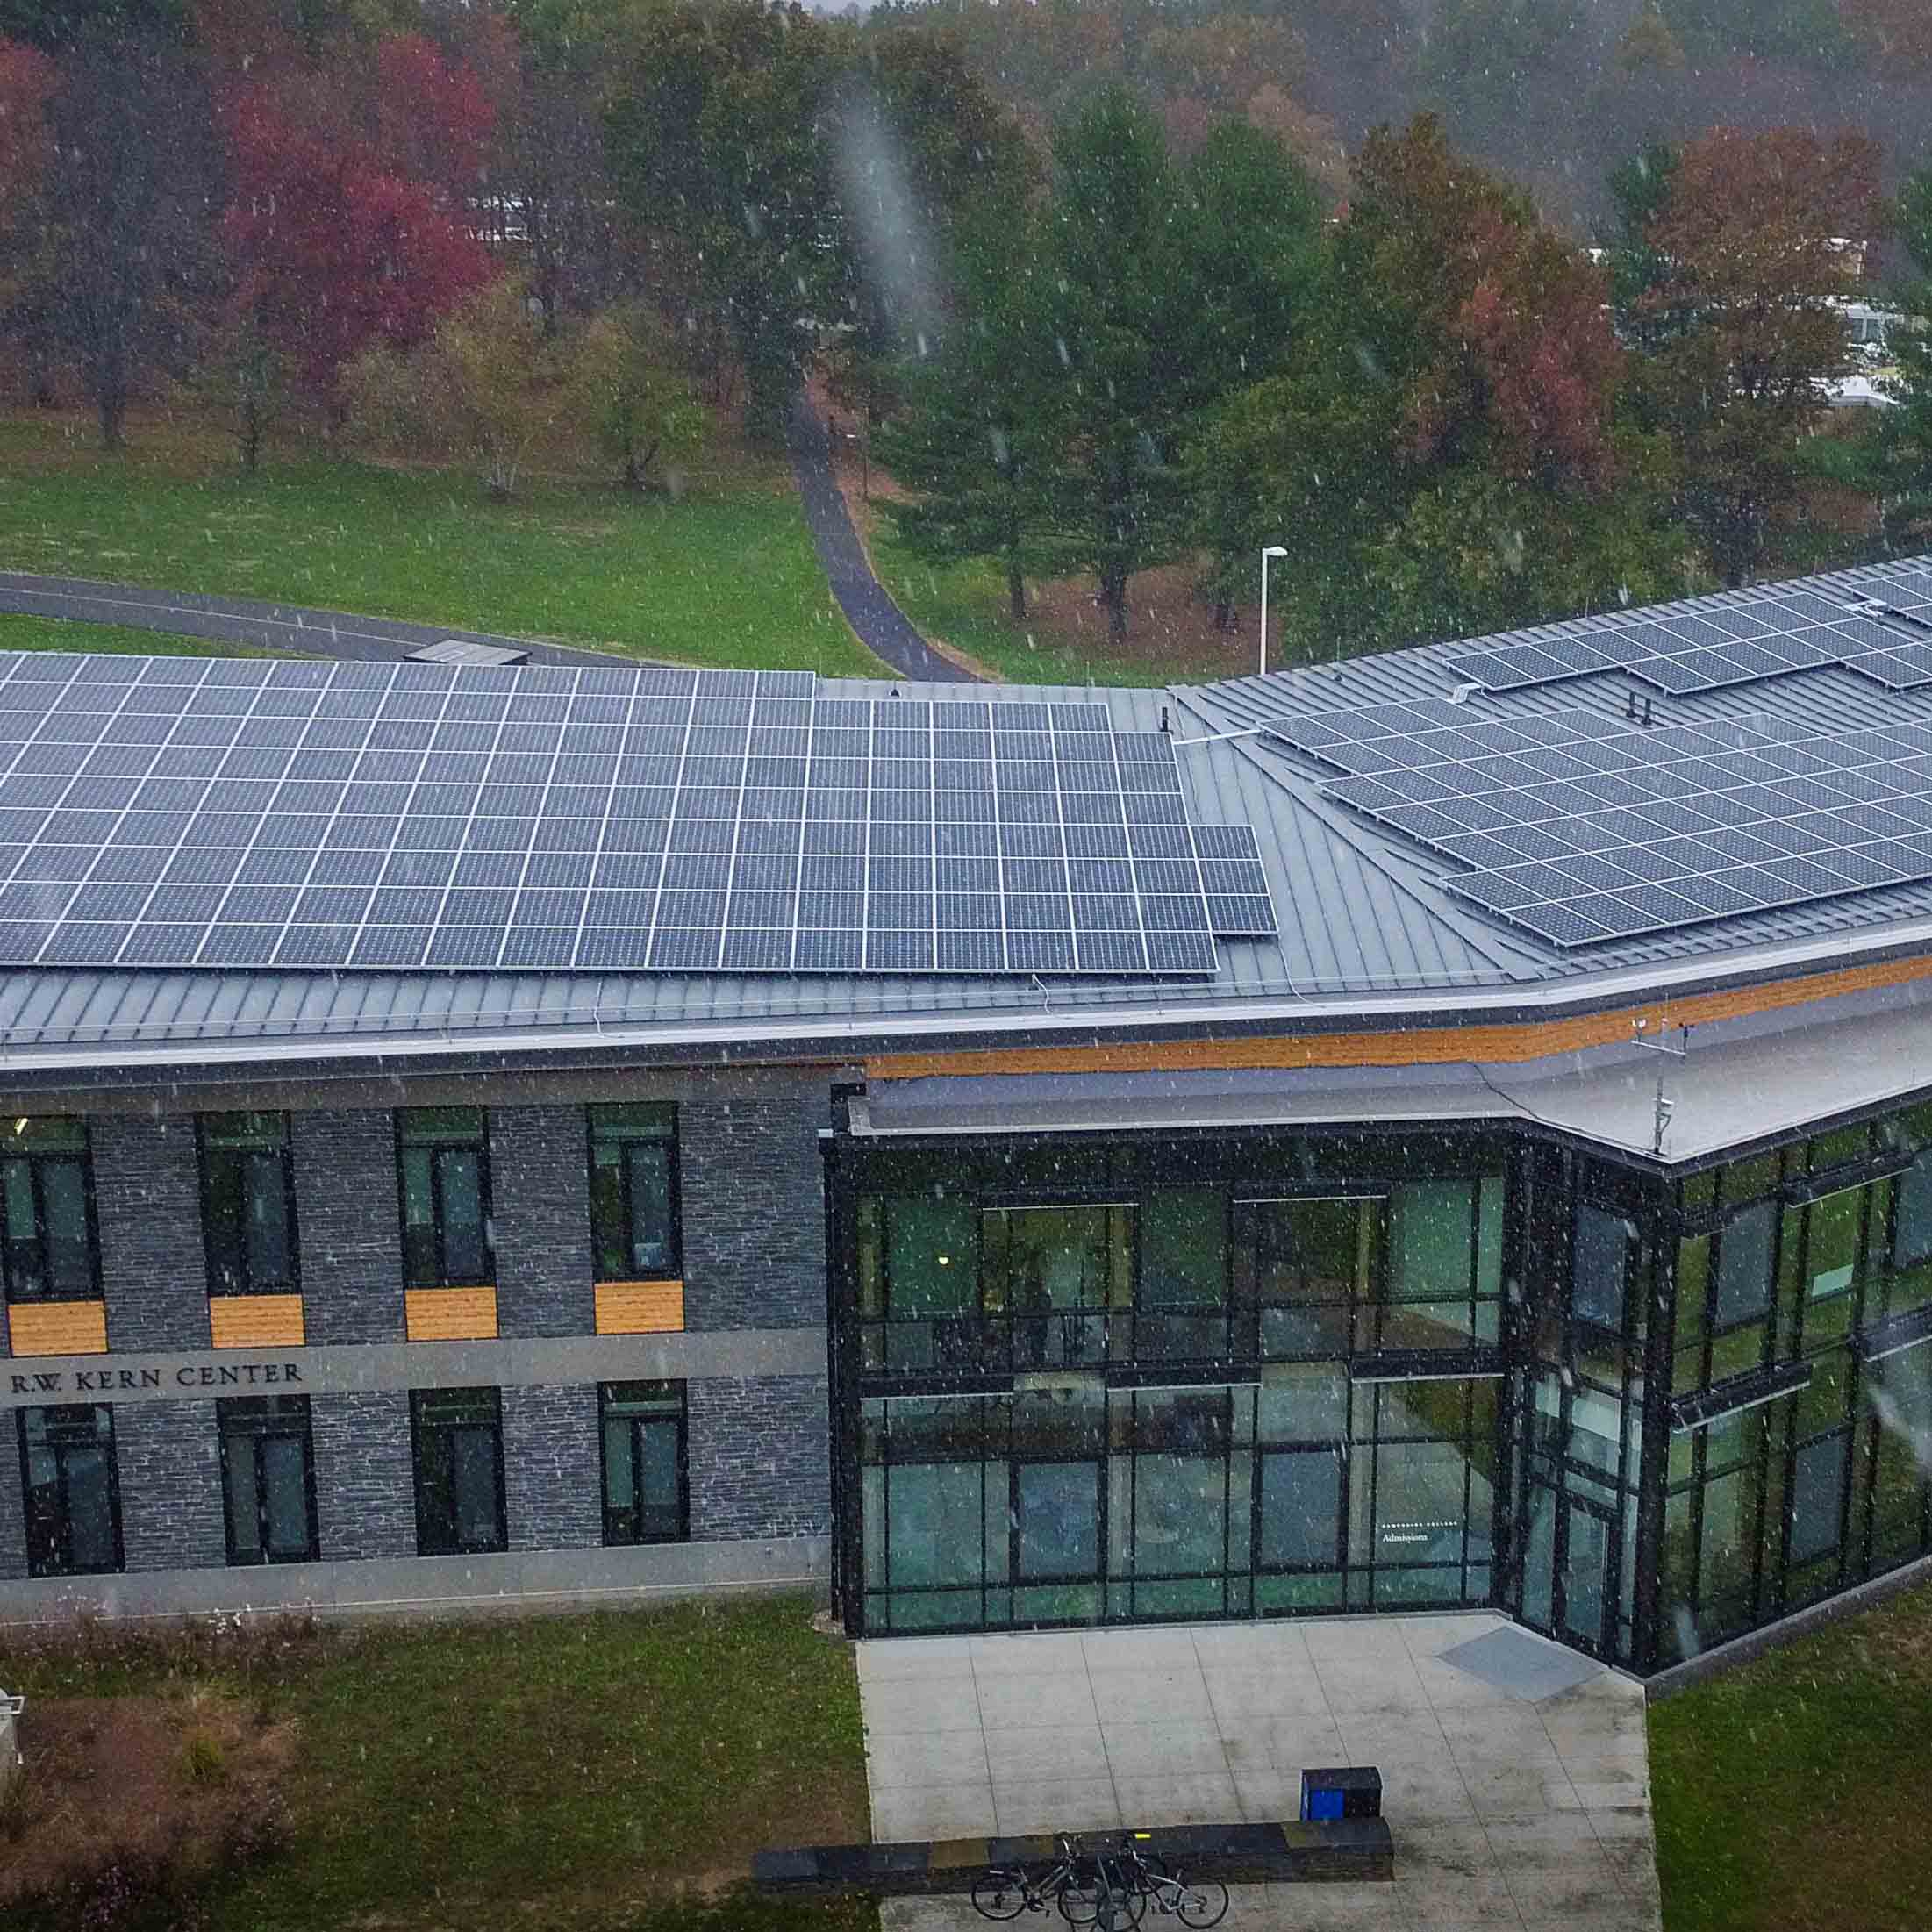 Roof mounted solar panels on R.W. Kern Center at Hampshire College